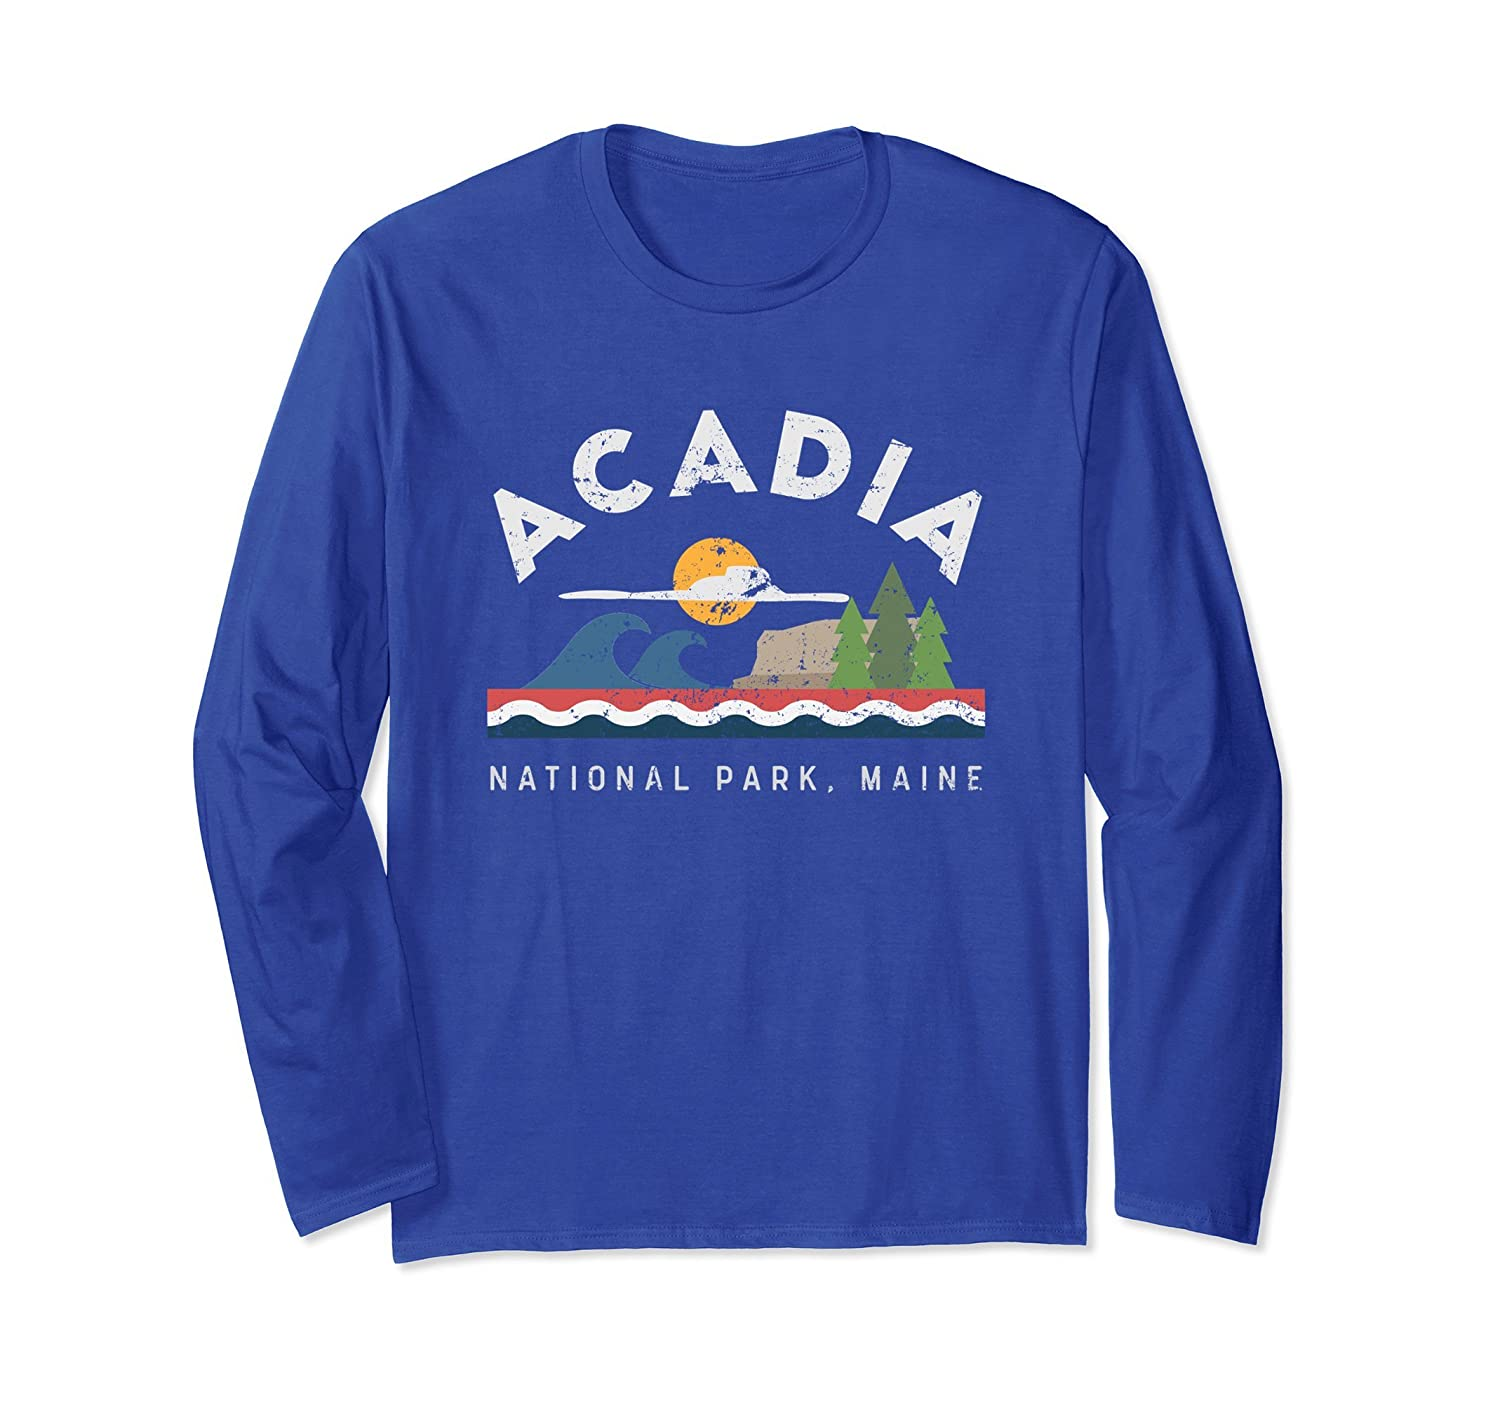 Acadia National Park Maine Longsleeve T Shirt-ah my shirt one gift